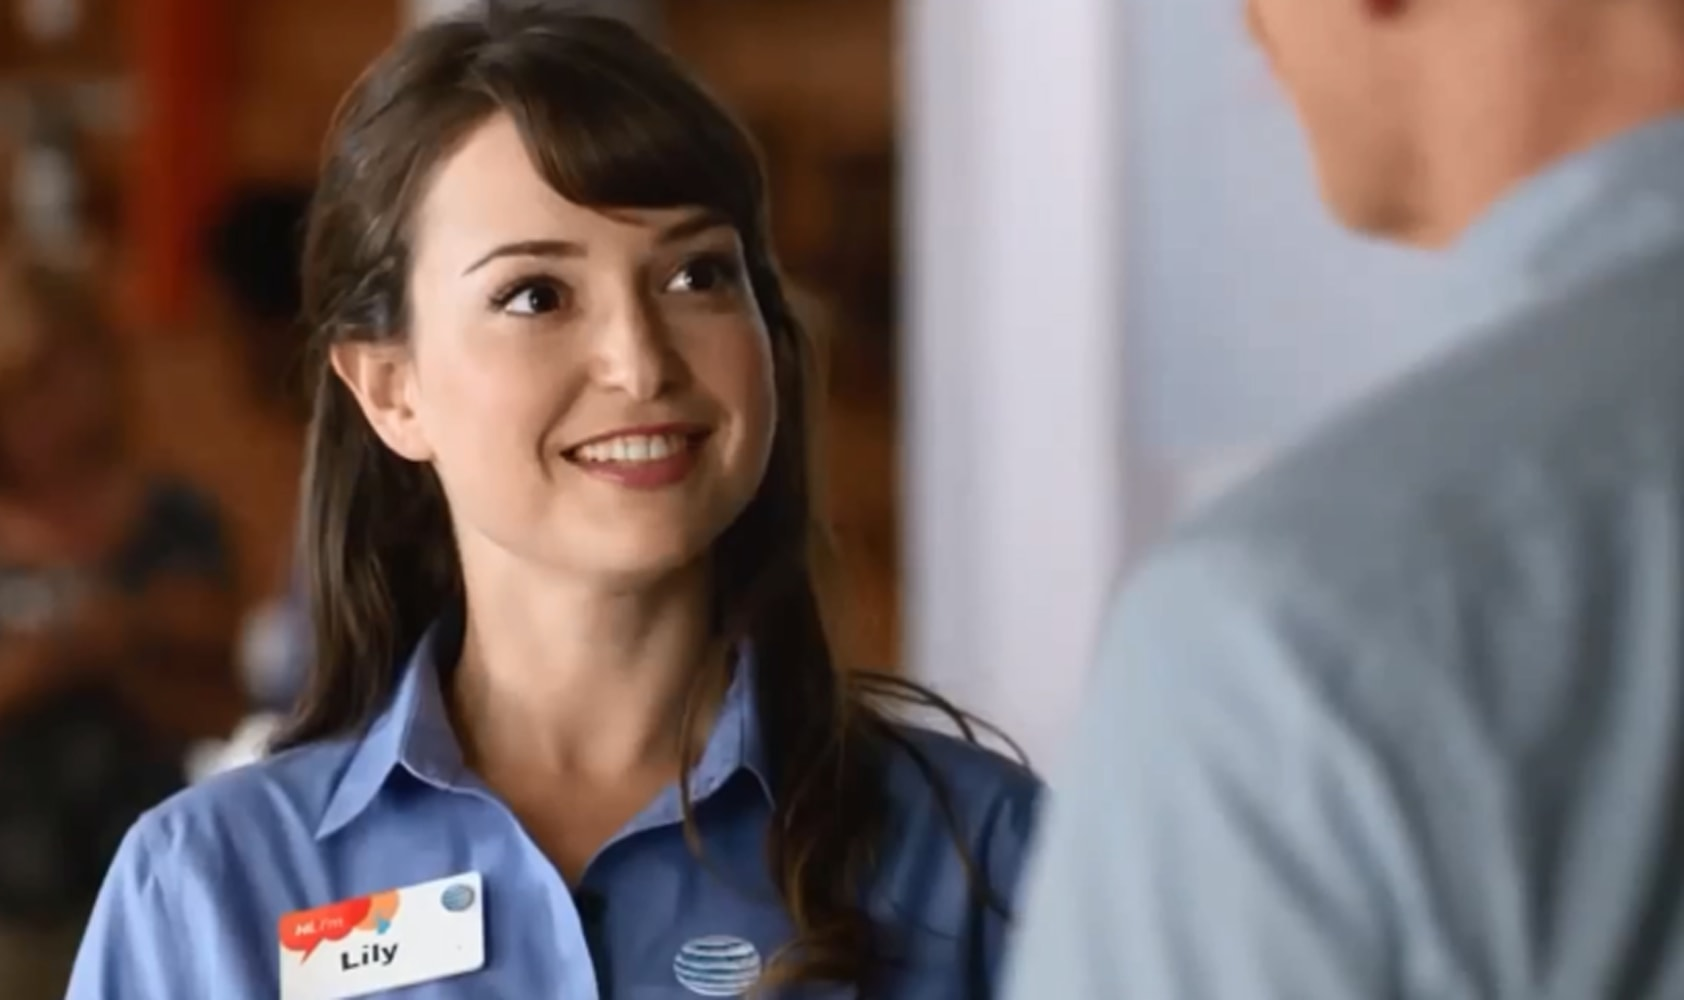 Milana Vayntrub — 'Lily' from Those AT&T Ads — Has a